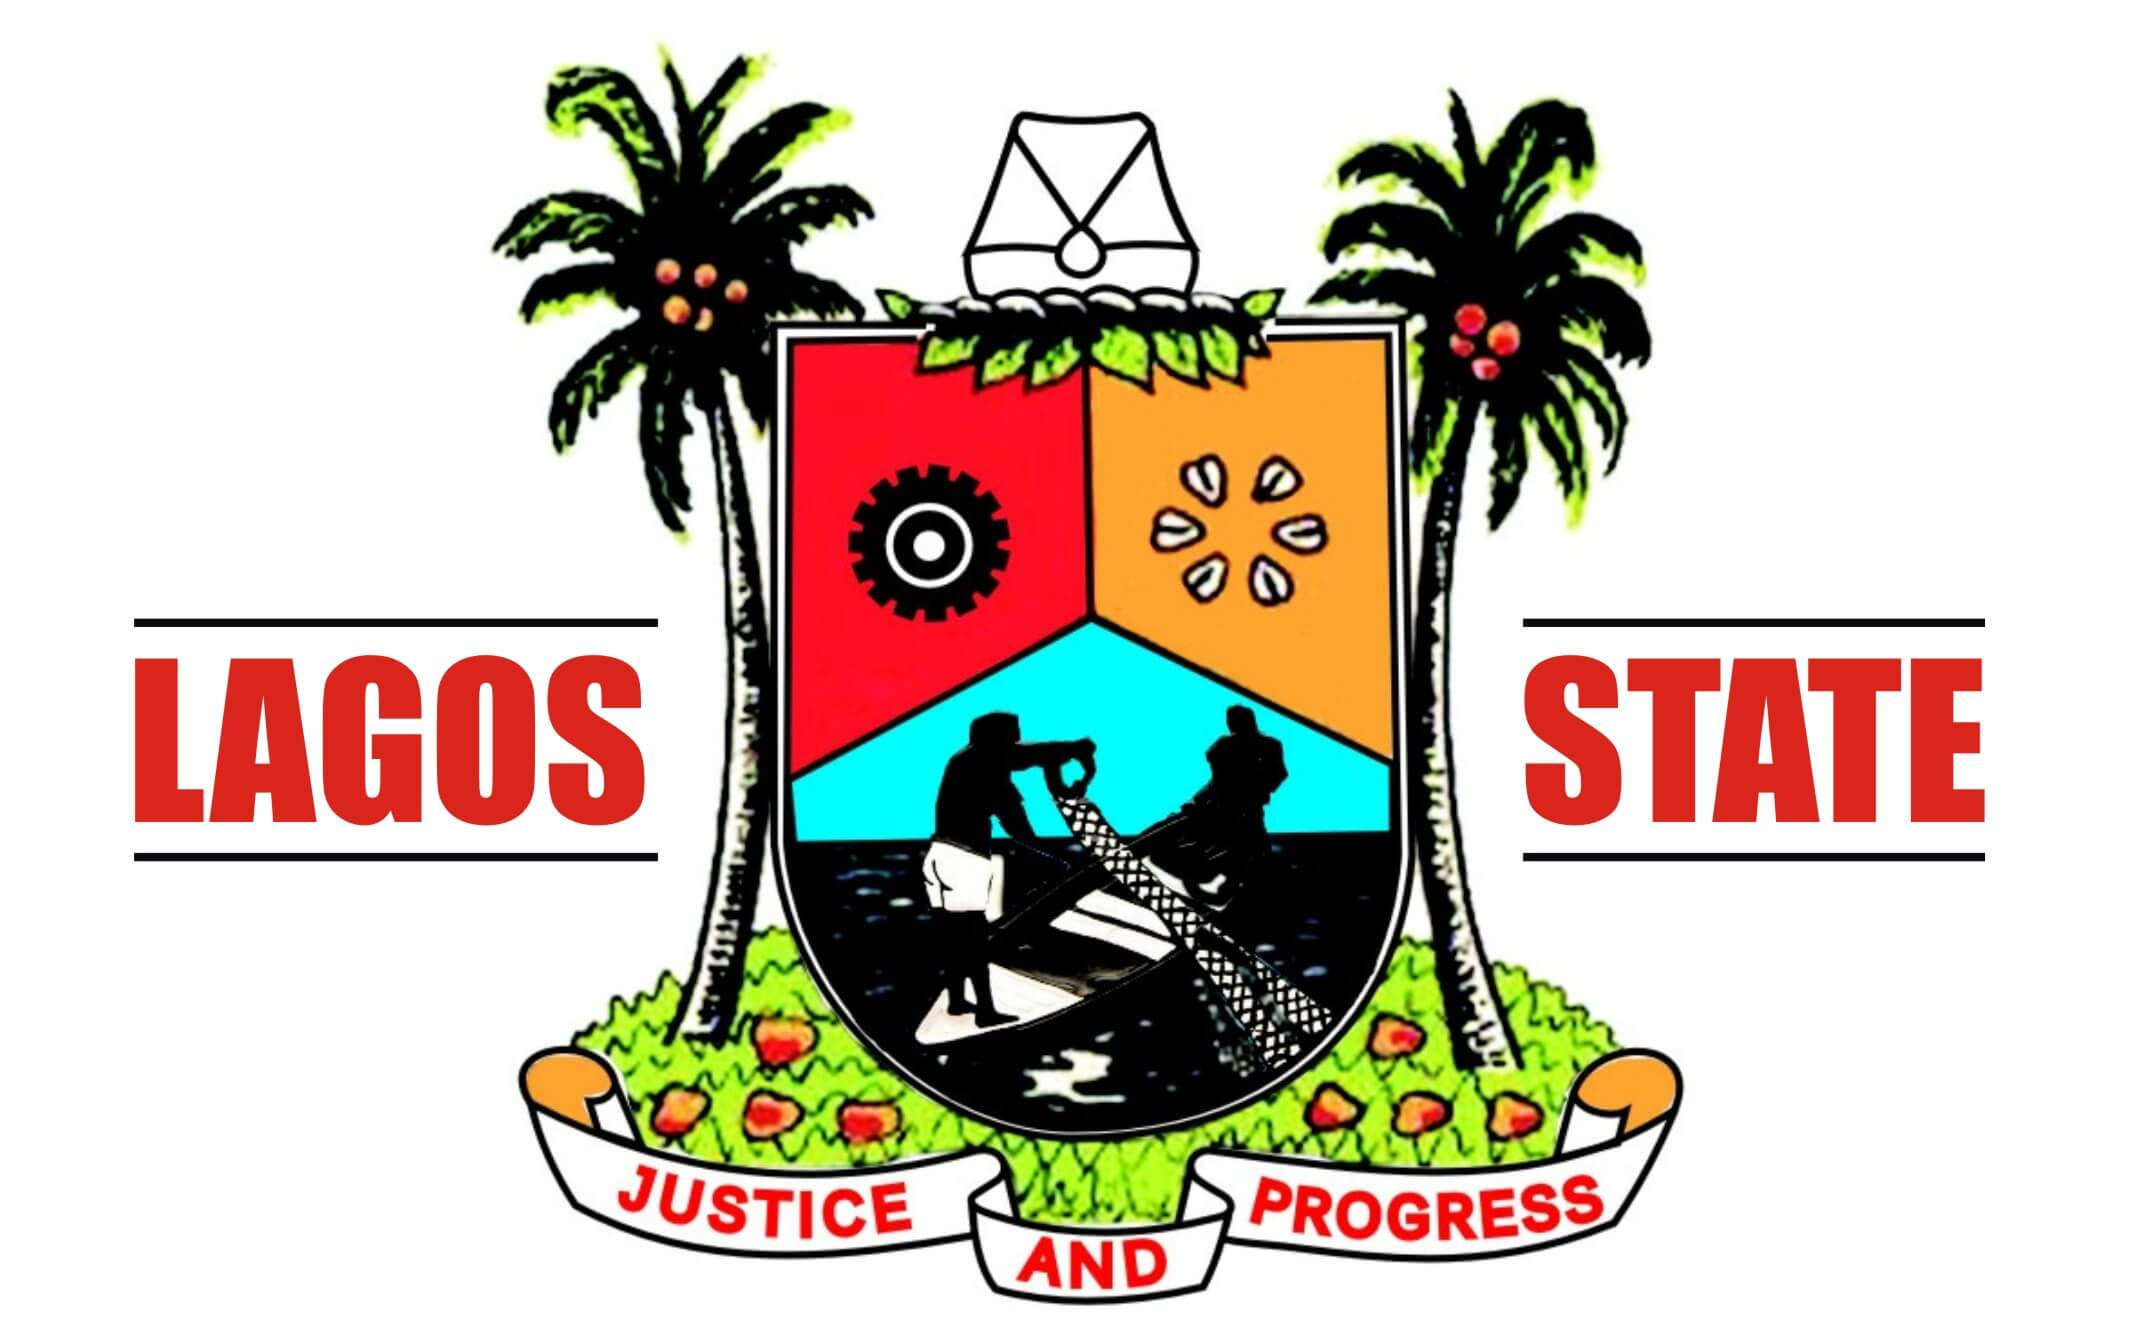 Lagos government launches register-to-open initiative of the economy amid Coronavirus pandemic lindaikejisblog